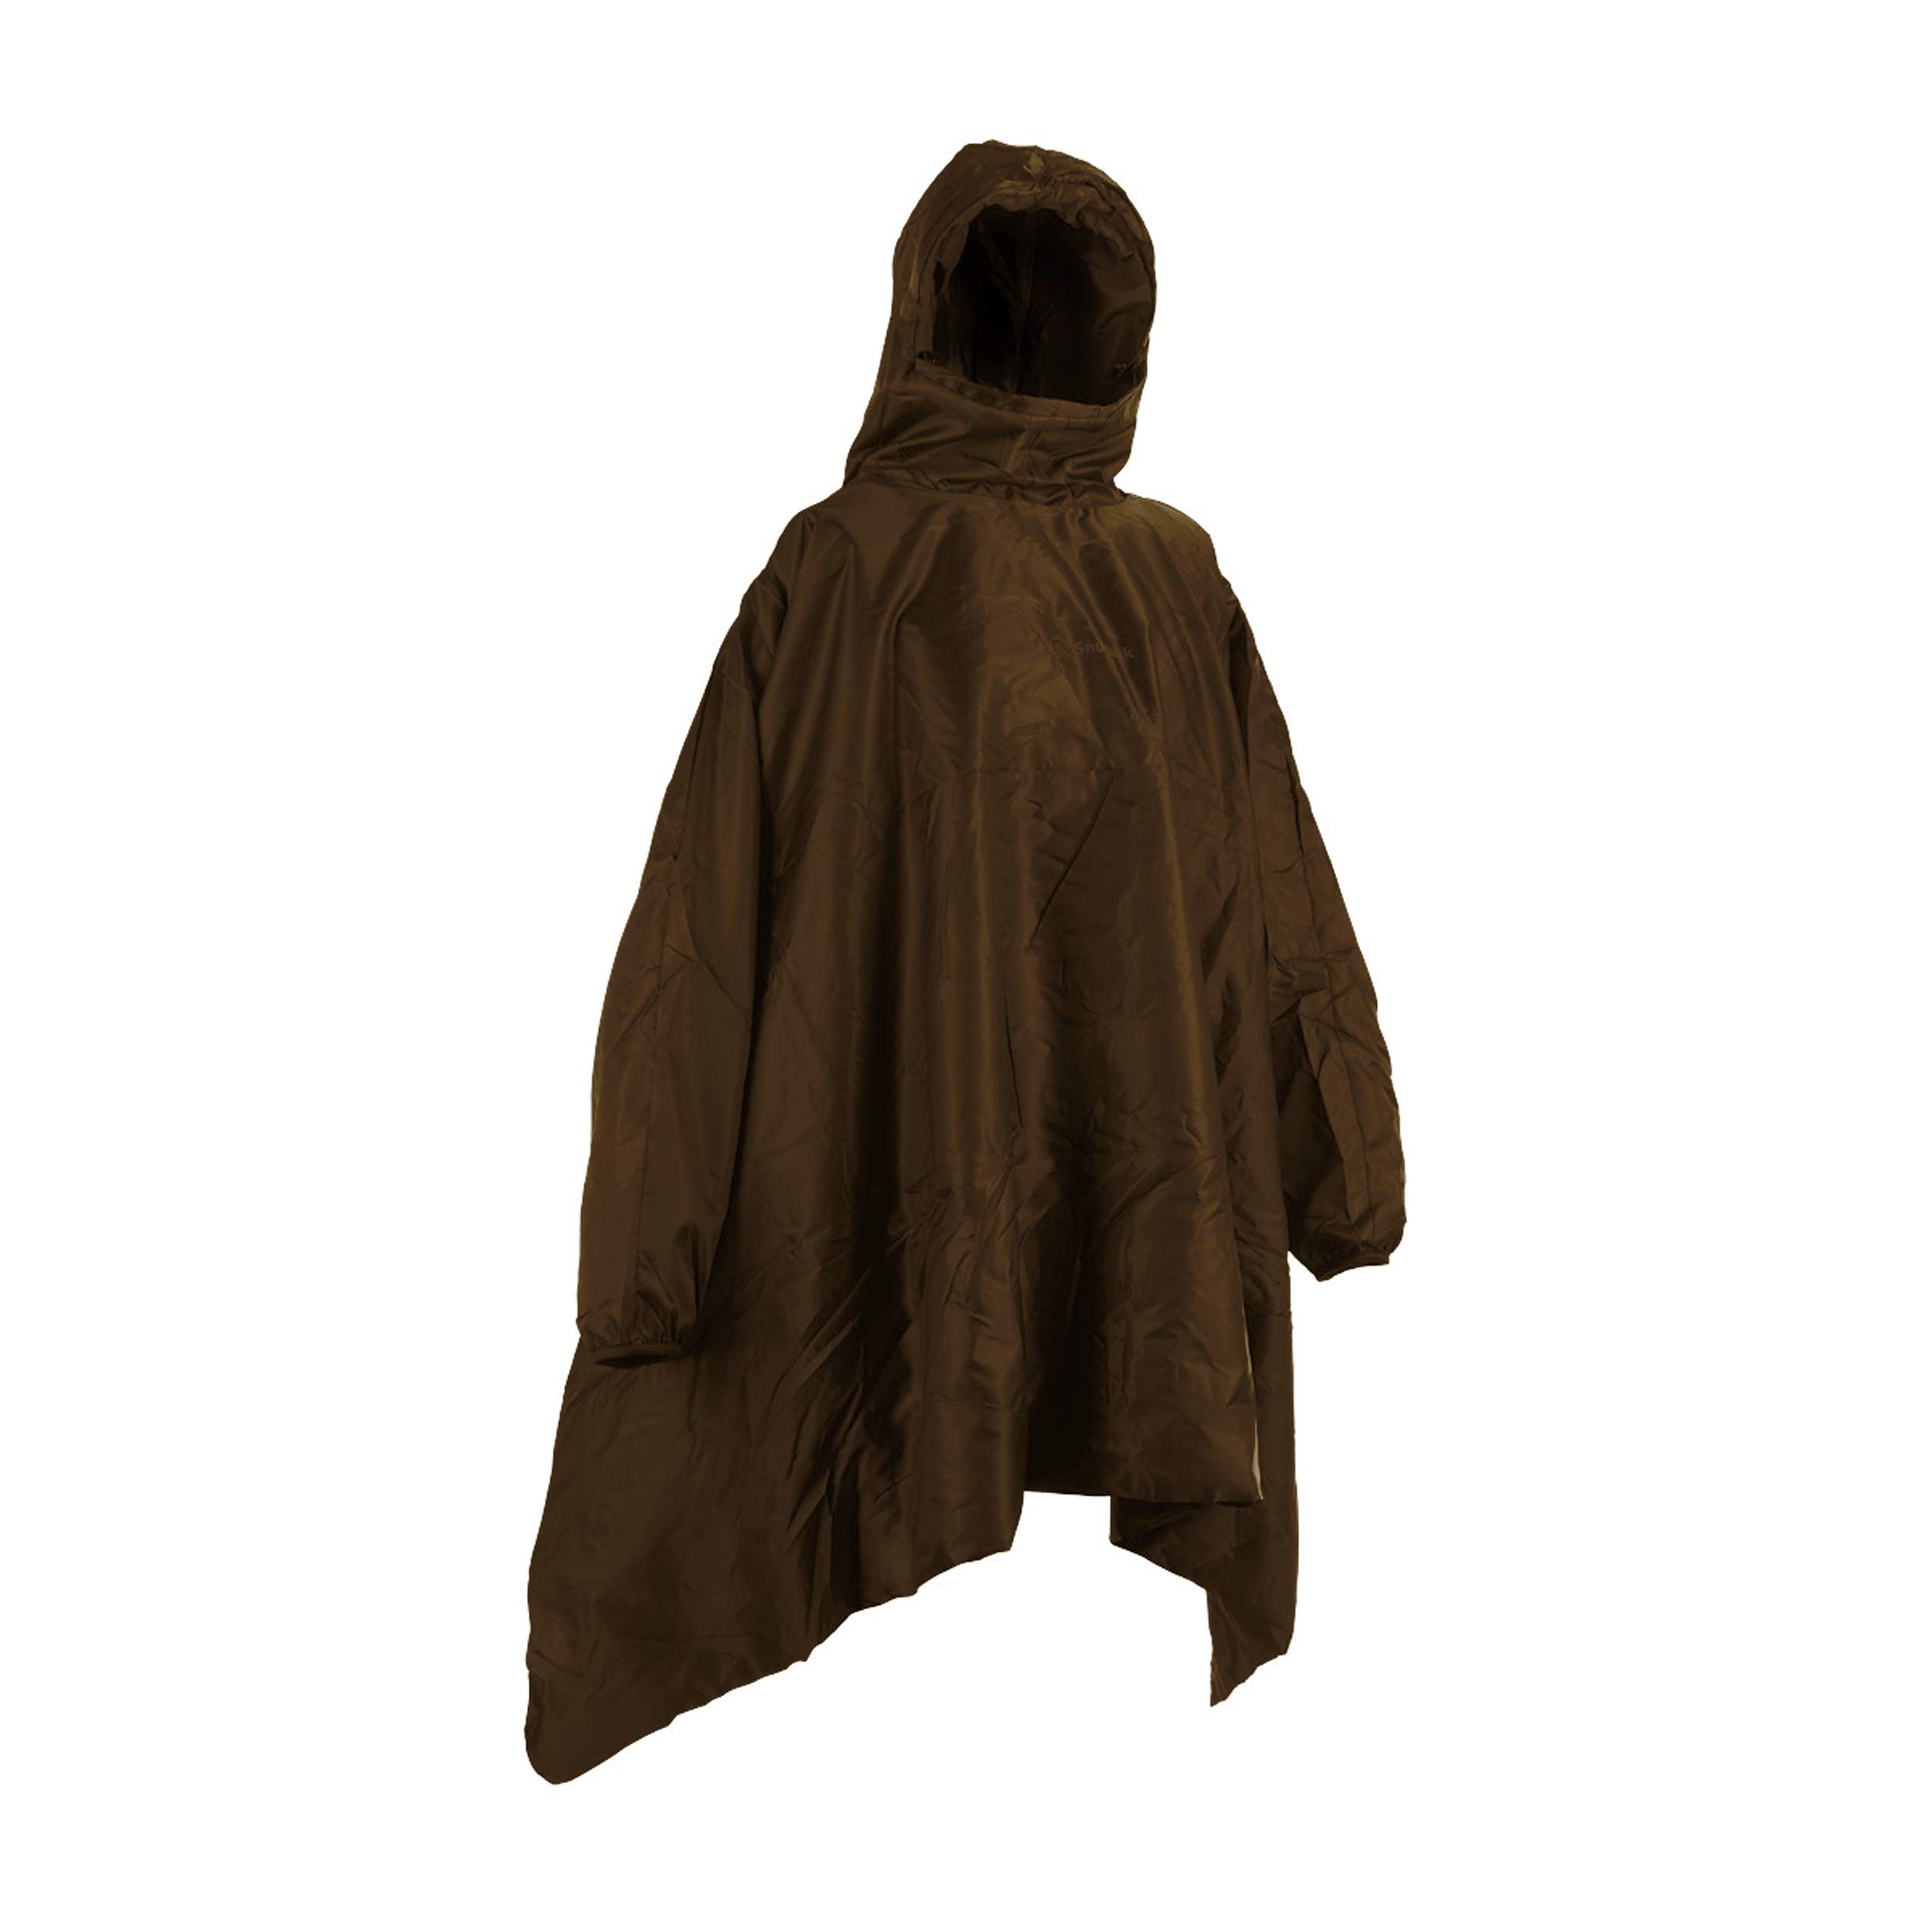 Snugpak Waterproof Poncho Liner, One Size (Coyote Tan) by Snugpak